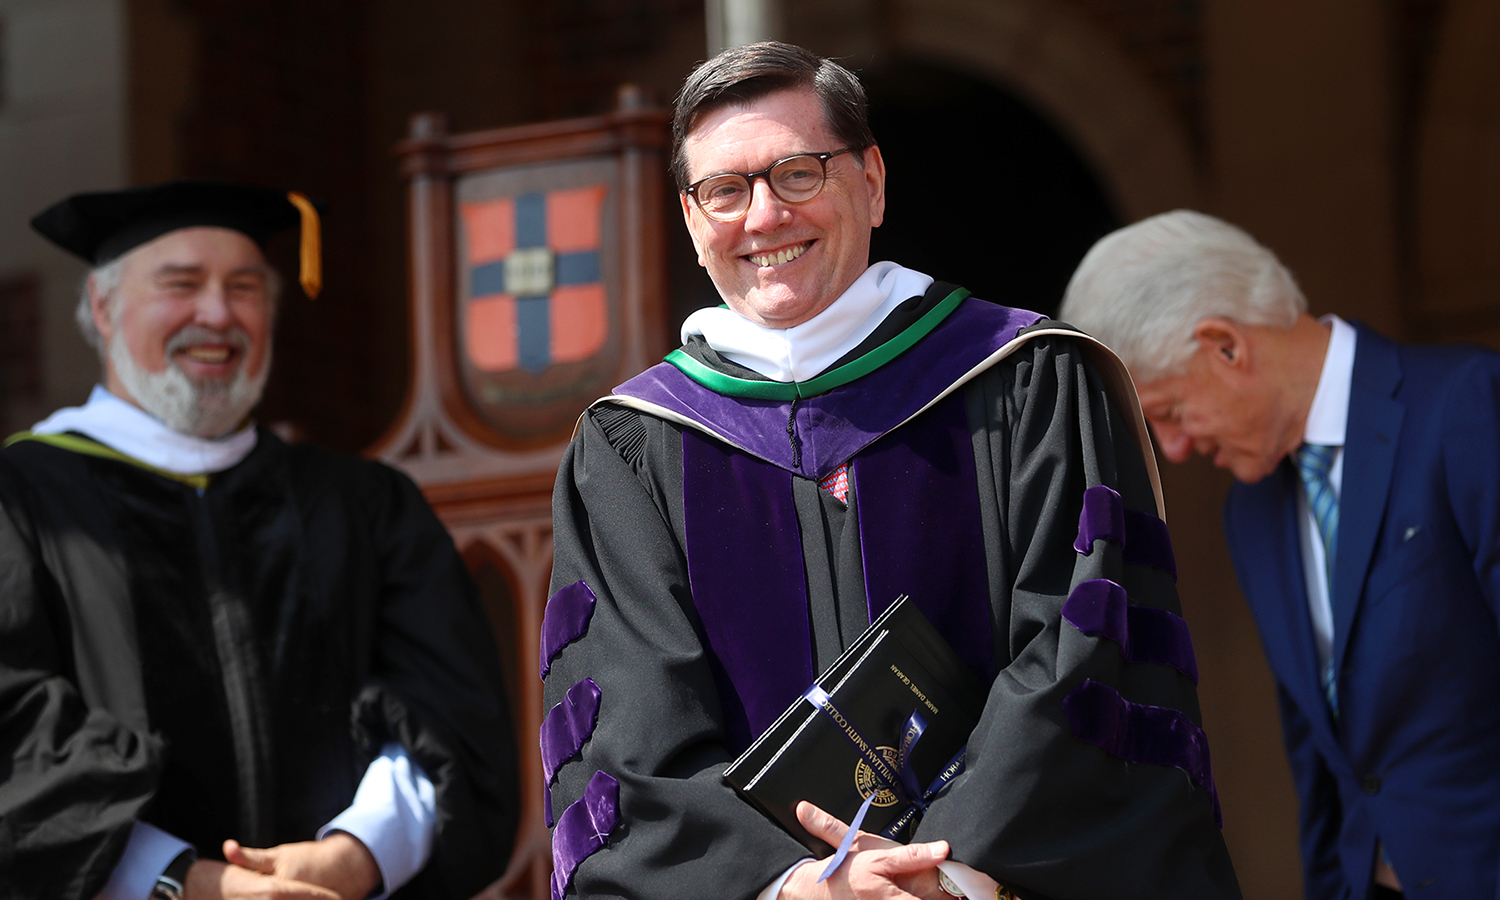 President Mark D. Gearan poses for a photo after being named the first president emeritus in the history of Hobart and William Smith Colleges.